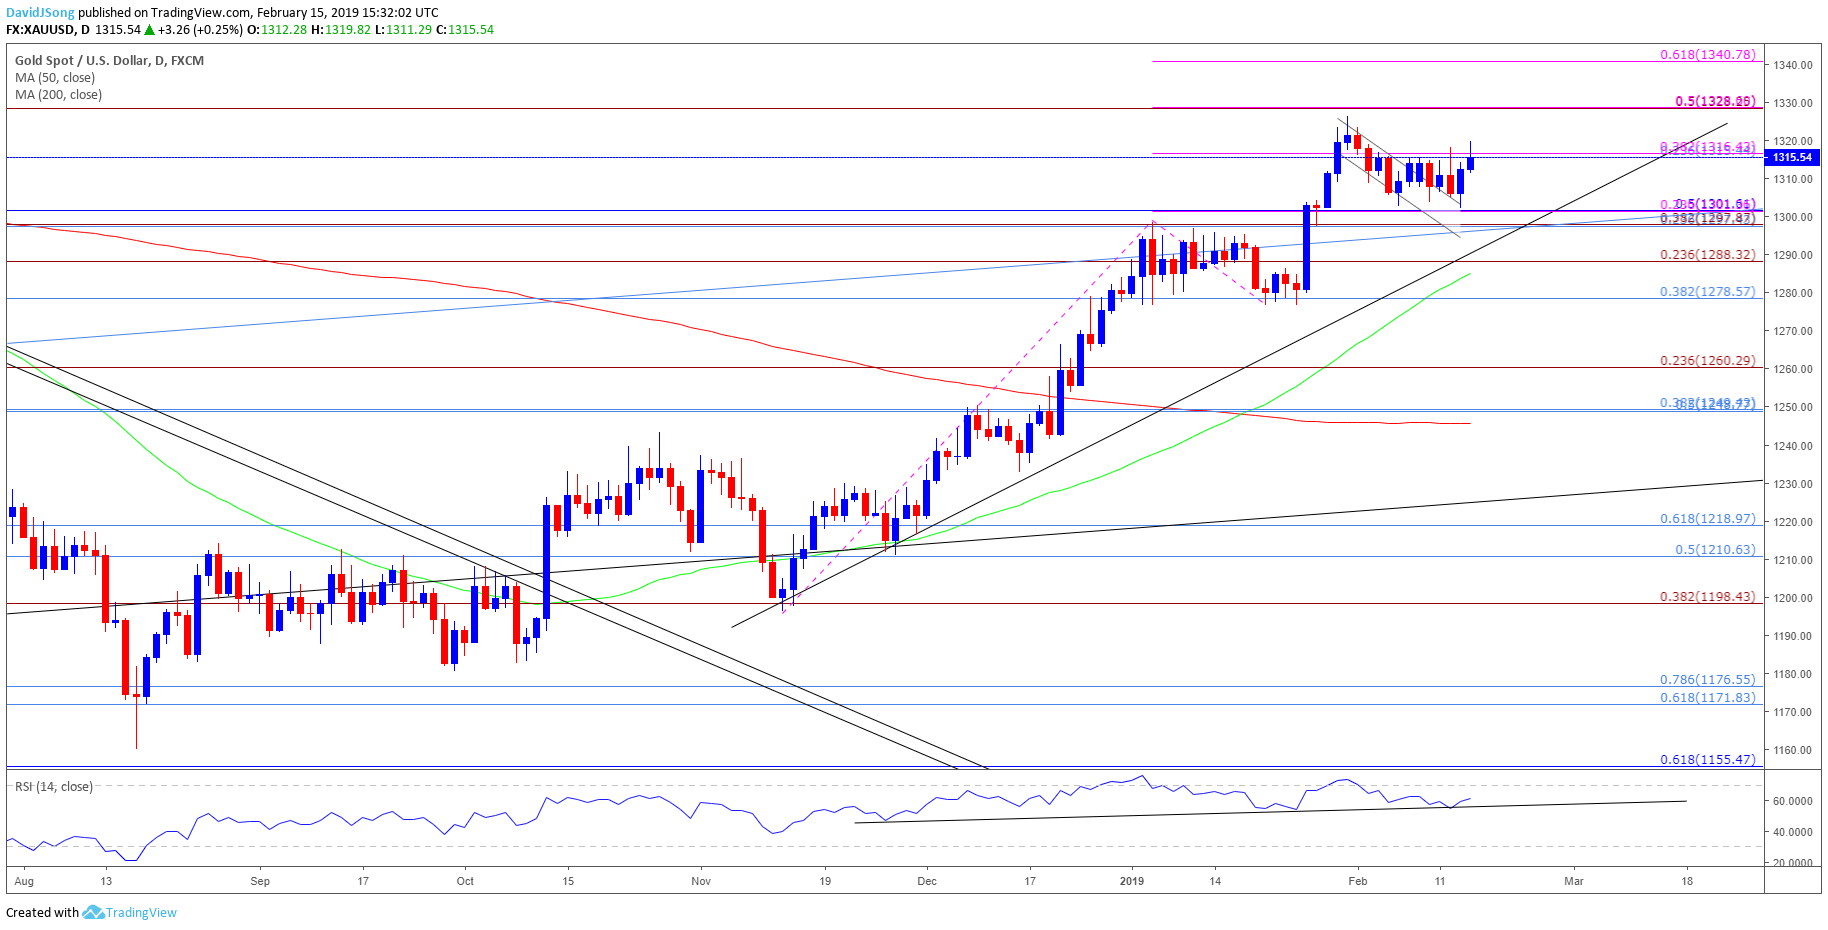 Image of gold daily chart